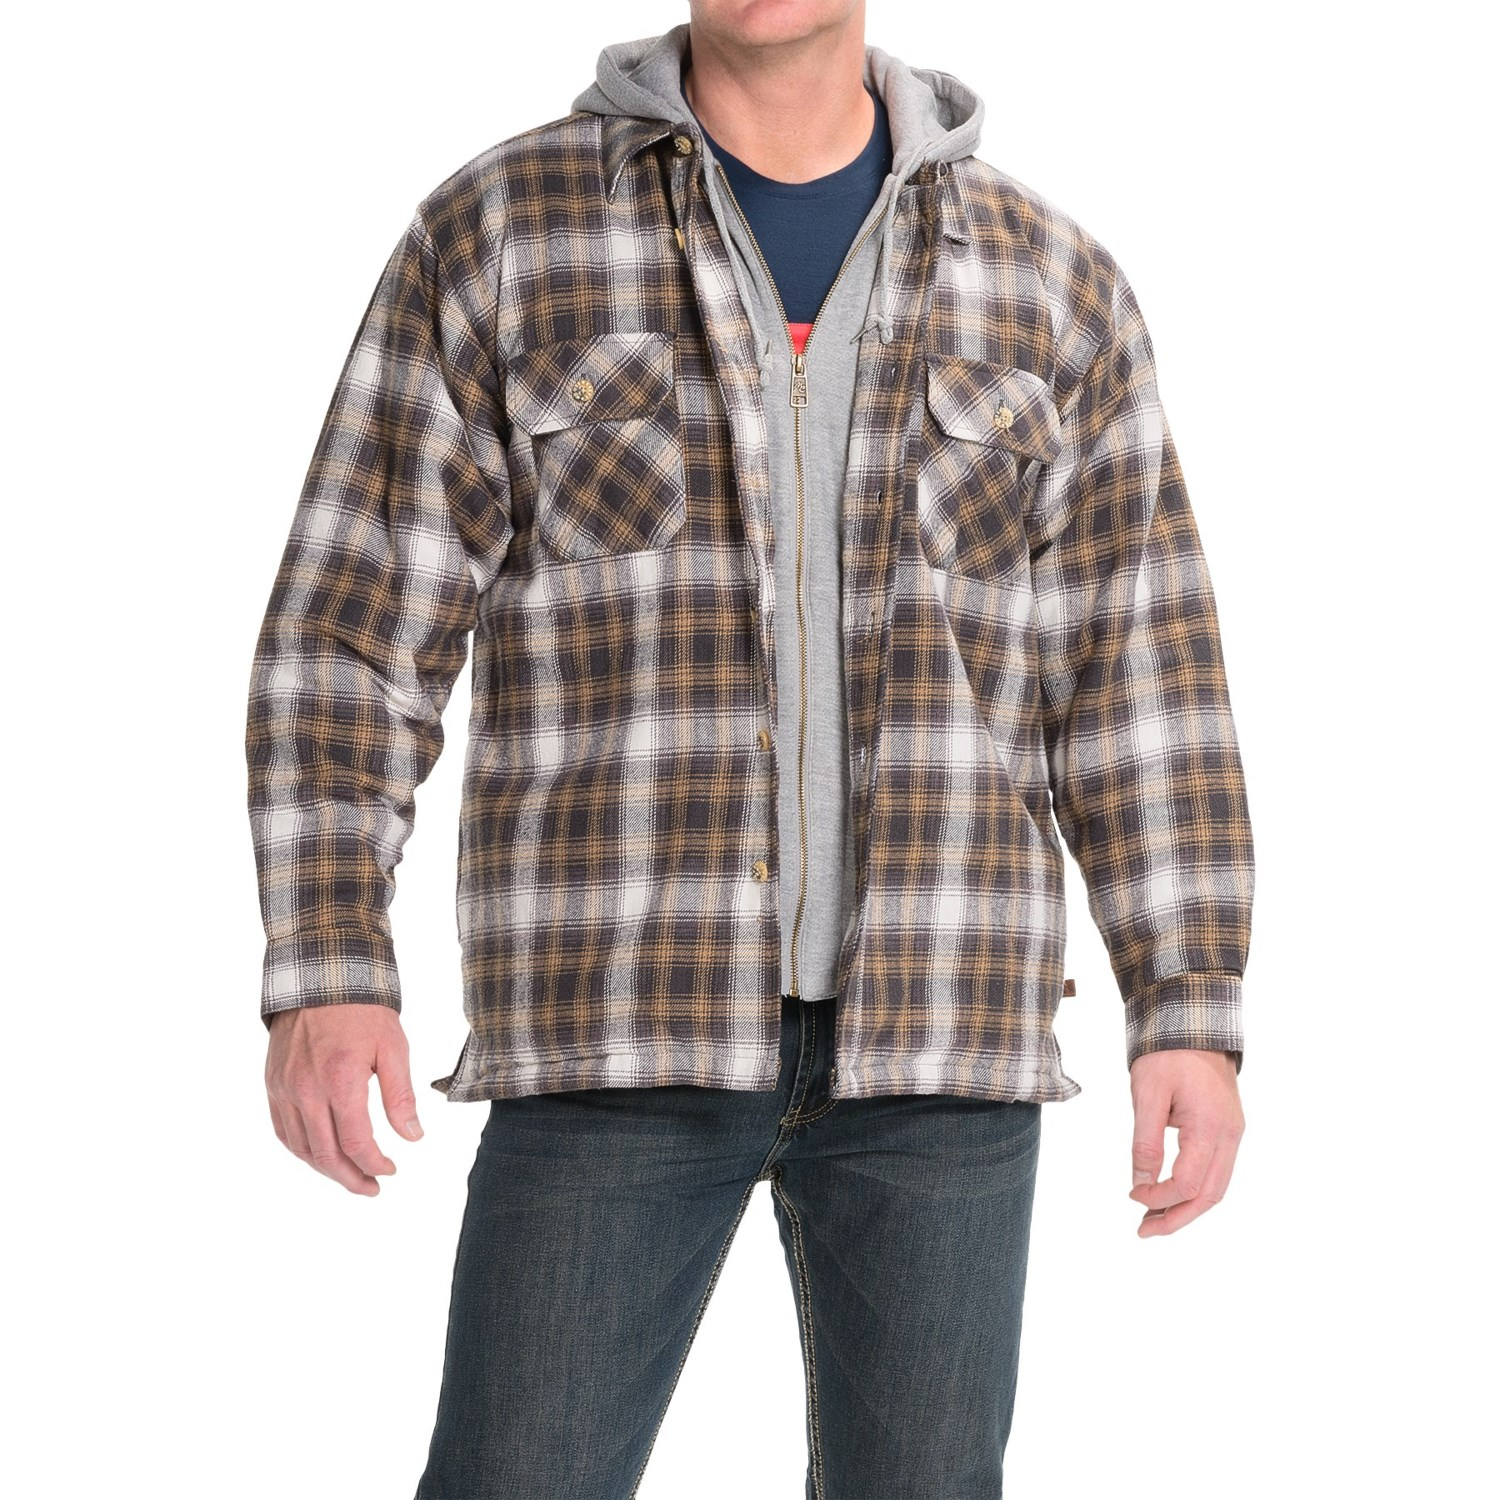 Northwest Territory Men's Flannel Shirt Jacket - Plaid. Sold by Kmart. $ $ Burnside B Men's Two Chest Pocket Quilted Flannel Jacket Black Plaid,XL. Sold by mundo-halflife.tk $ $ Burnside B Men's Two Chest Pocket Quilted Flannel Jacket Black Plaid,3X.